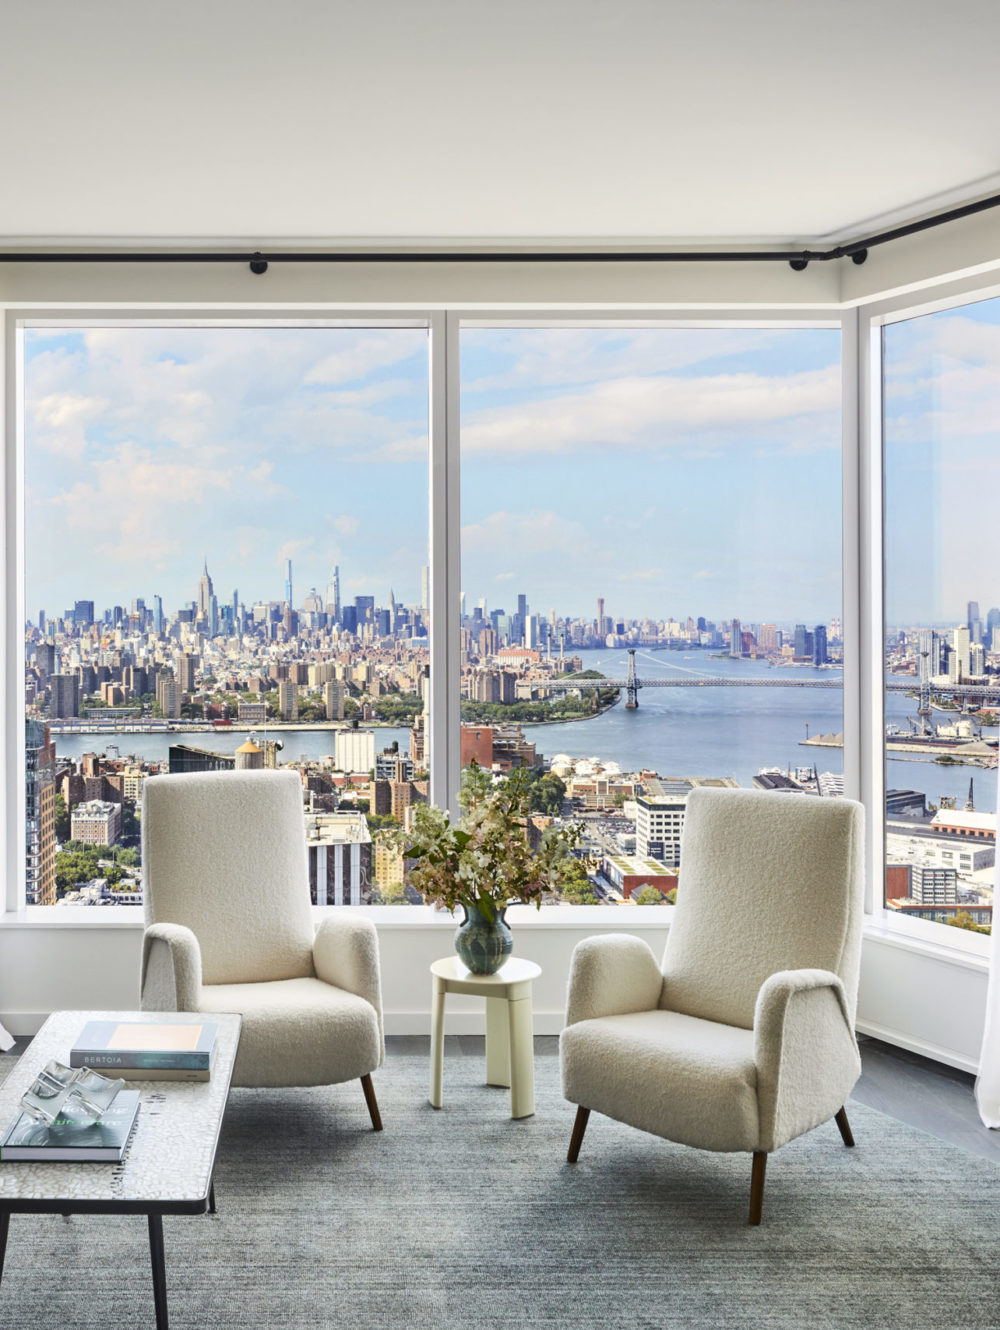 Interior view of Brooklyn Point residence living room with skyline window view. Has full furniture and white curtains.